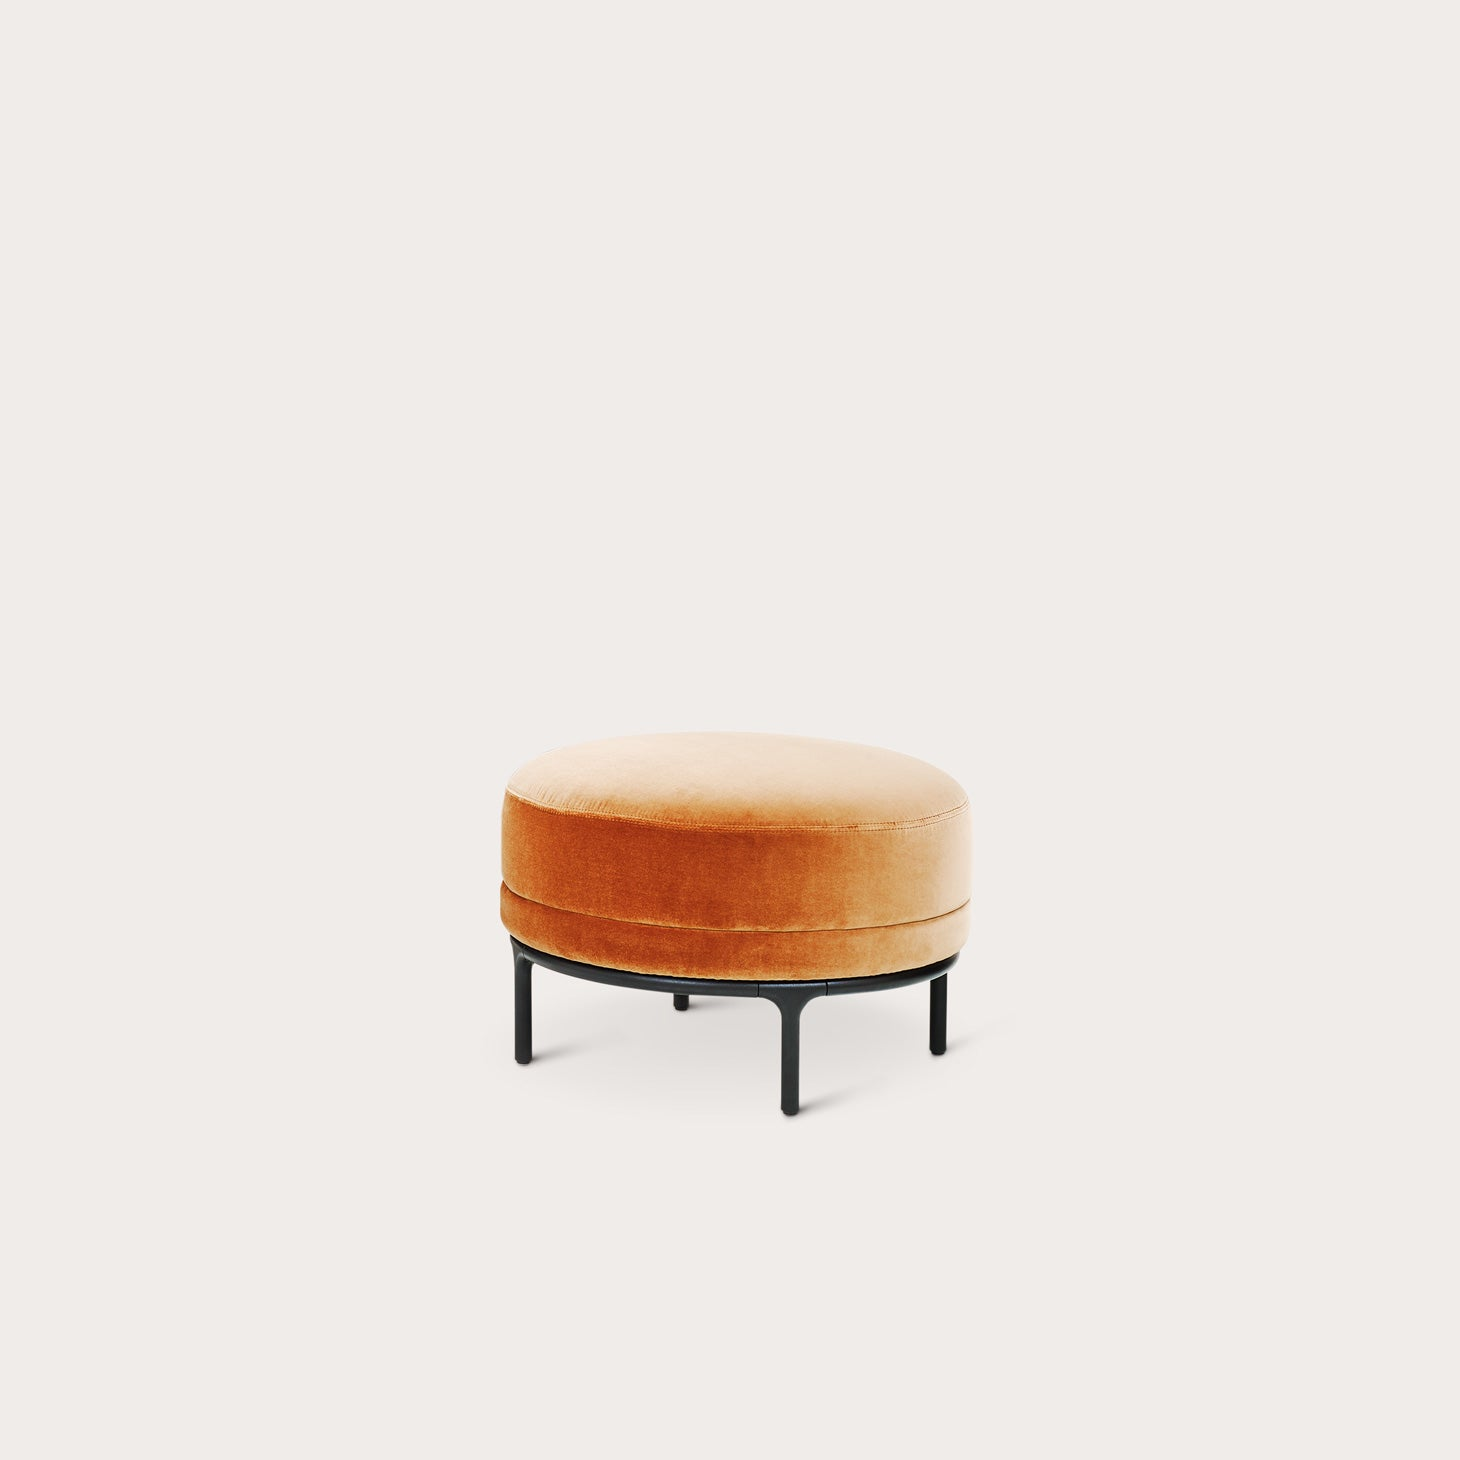 Vuelta Footstool Seating Jaime Hayon Designer Furniture Sku: 758-240-10316